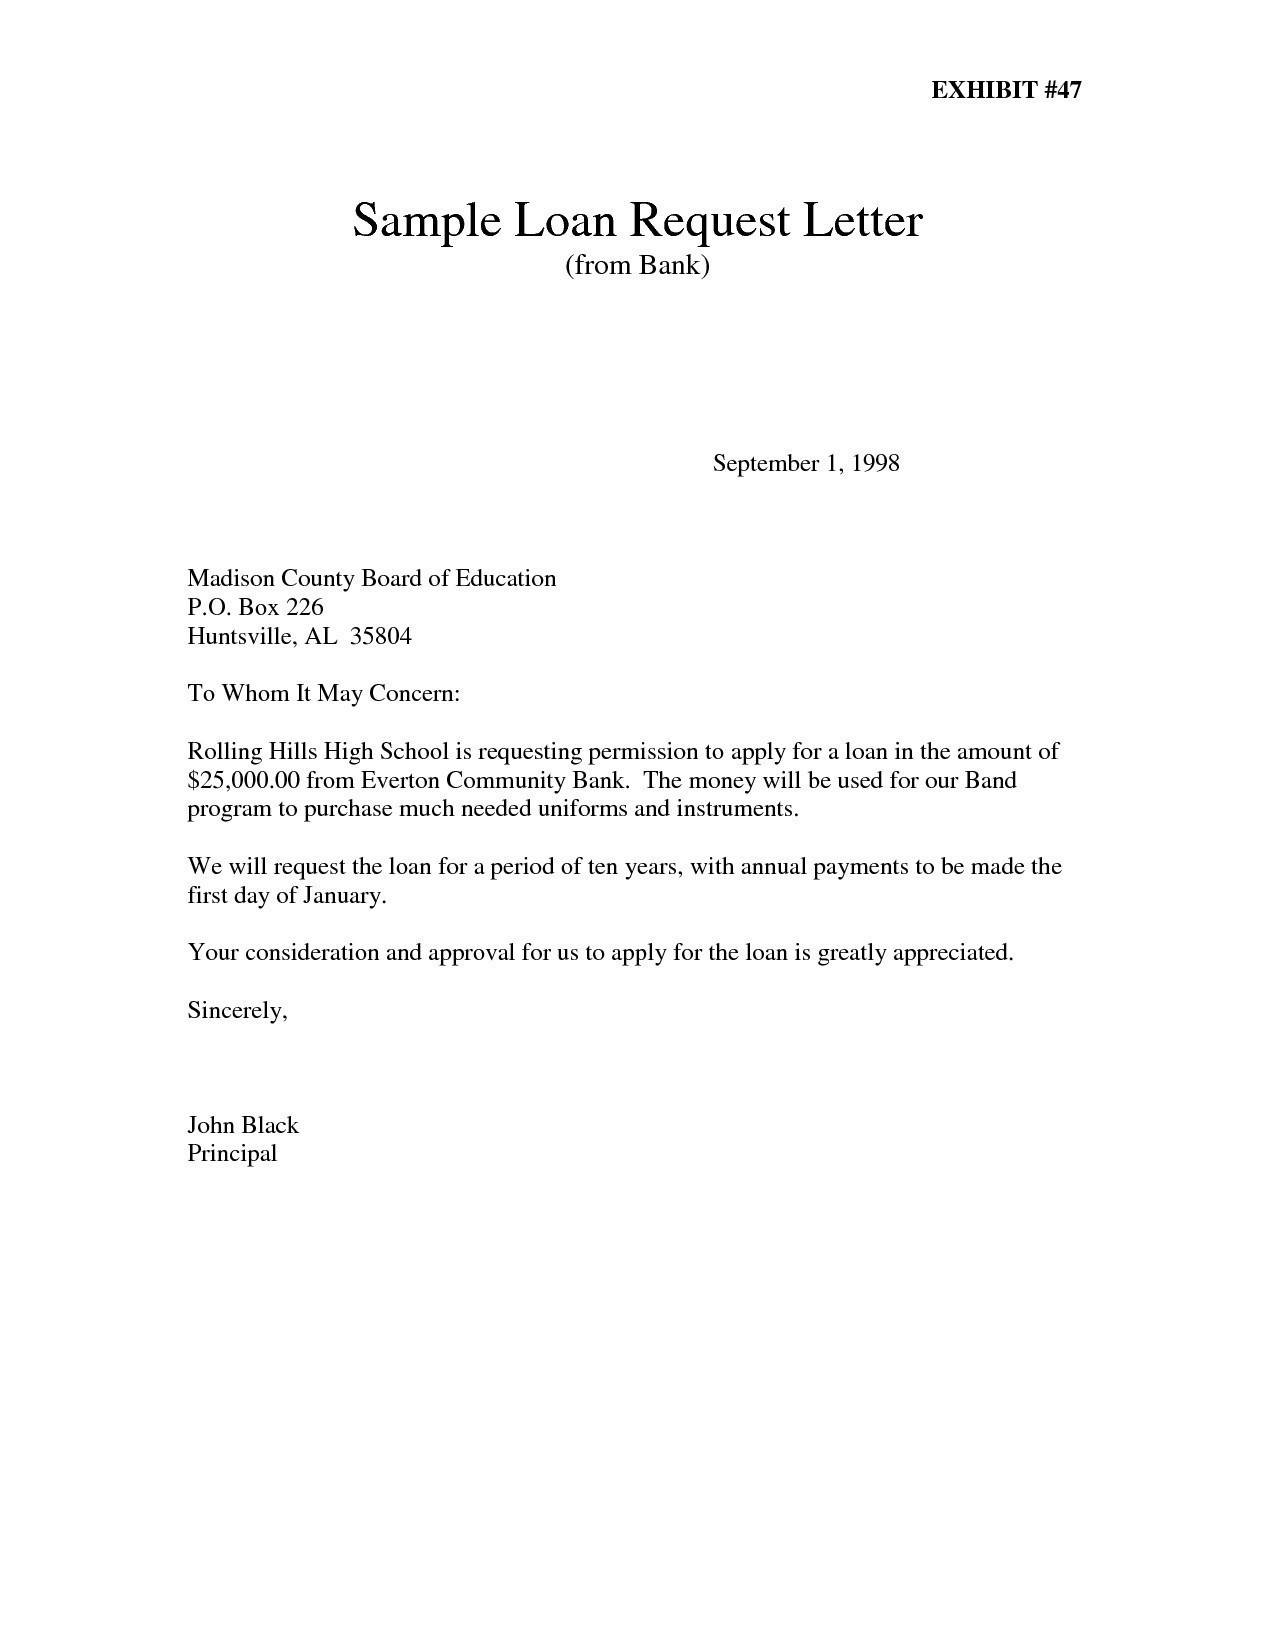 Personal Loan Appeal Letter Sample